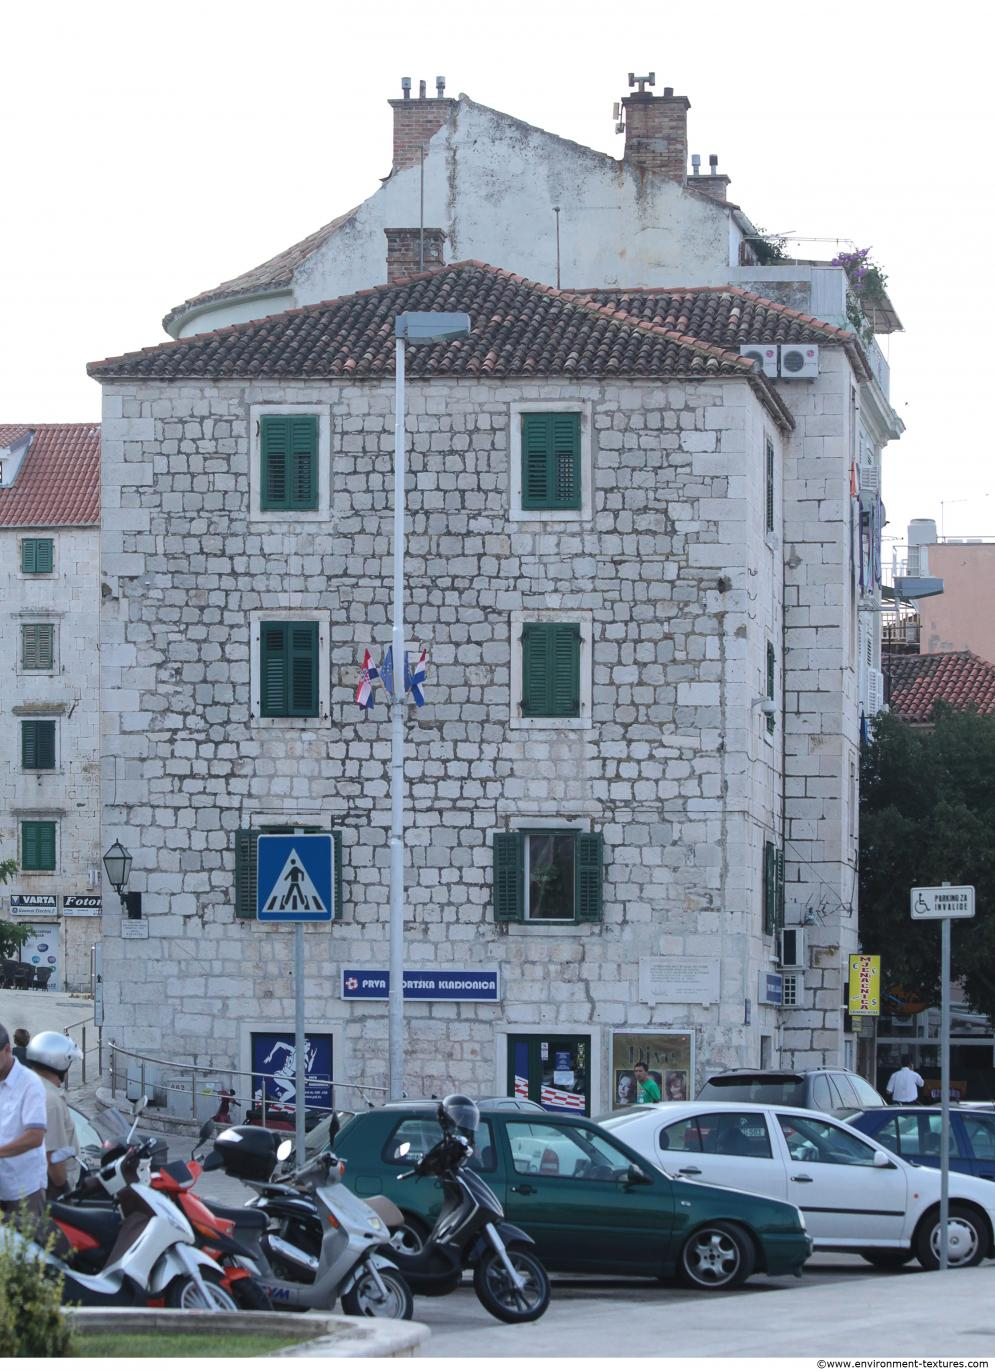 Image from Free Photo Texture of Buildings Croatia from environment-textures.com - photo_texture_of_building_old_house_0003.jpg